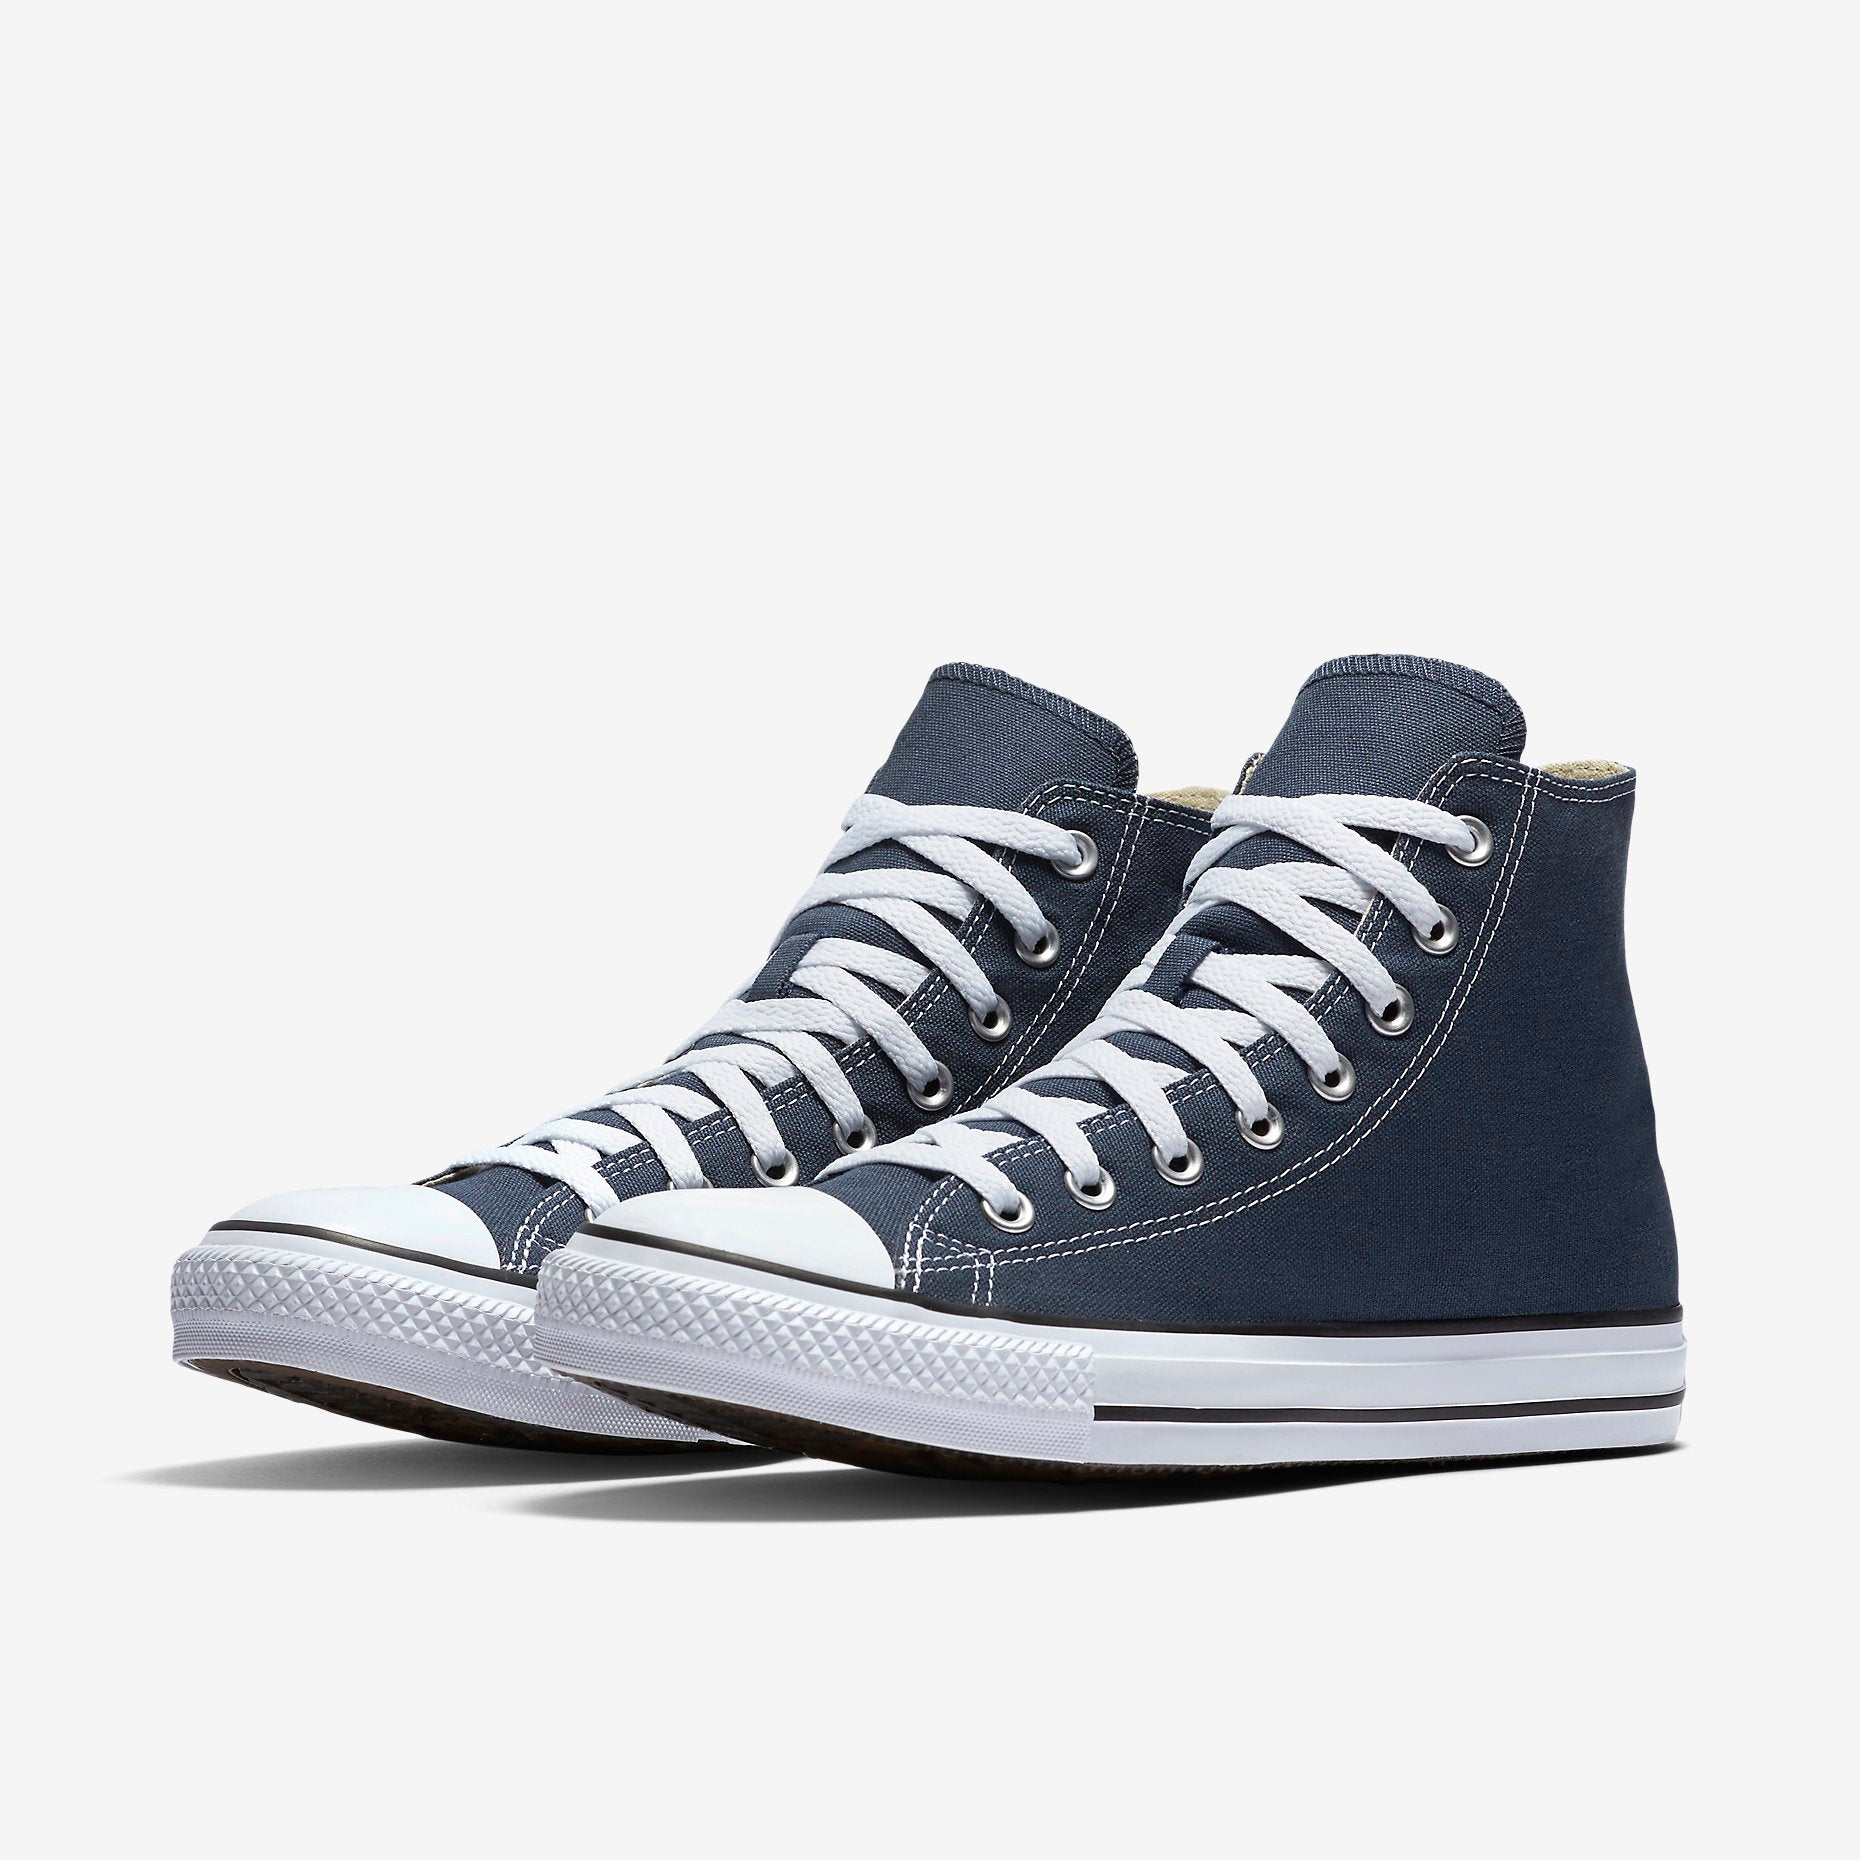 Converse Unisex Navy Chuck Taylor All Star High Top - Foot Paths Shoes f4cf18531